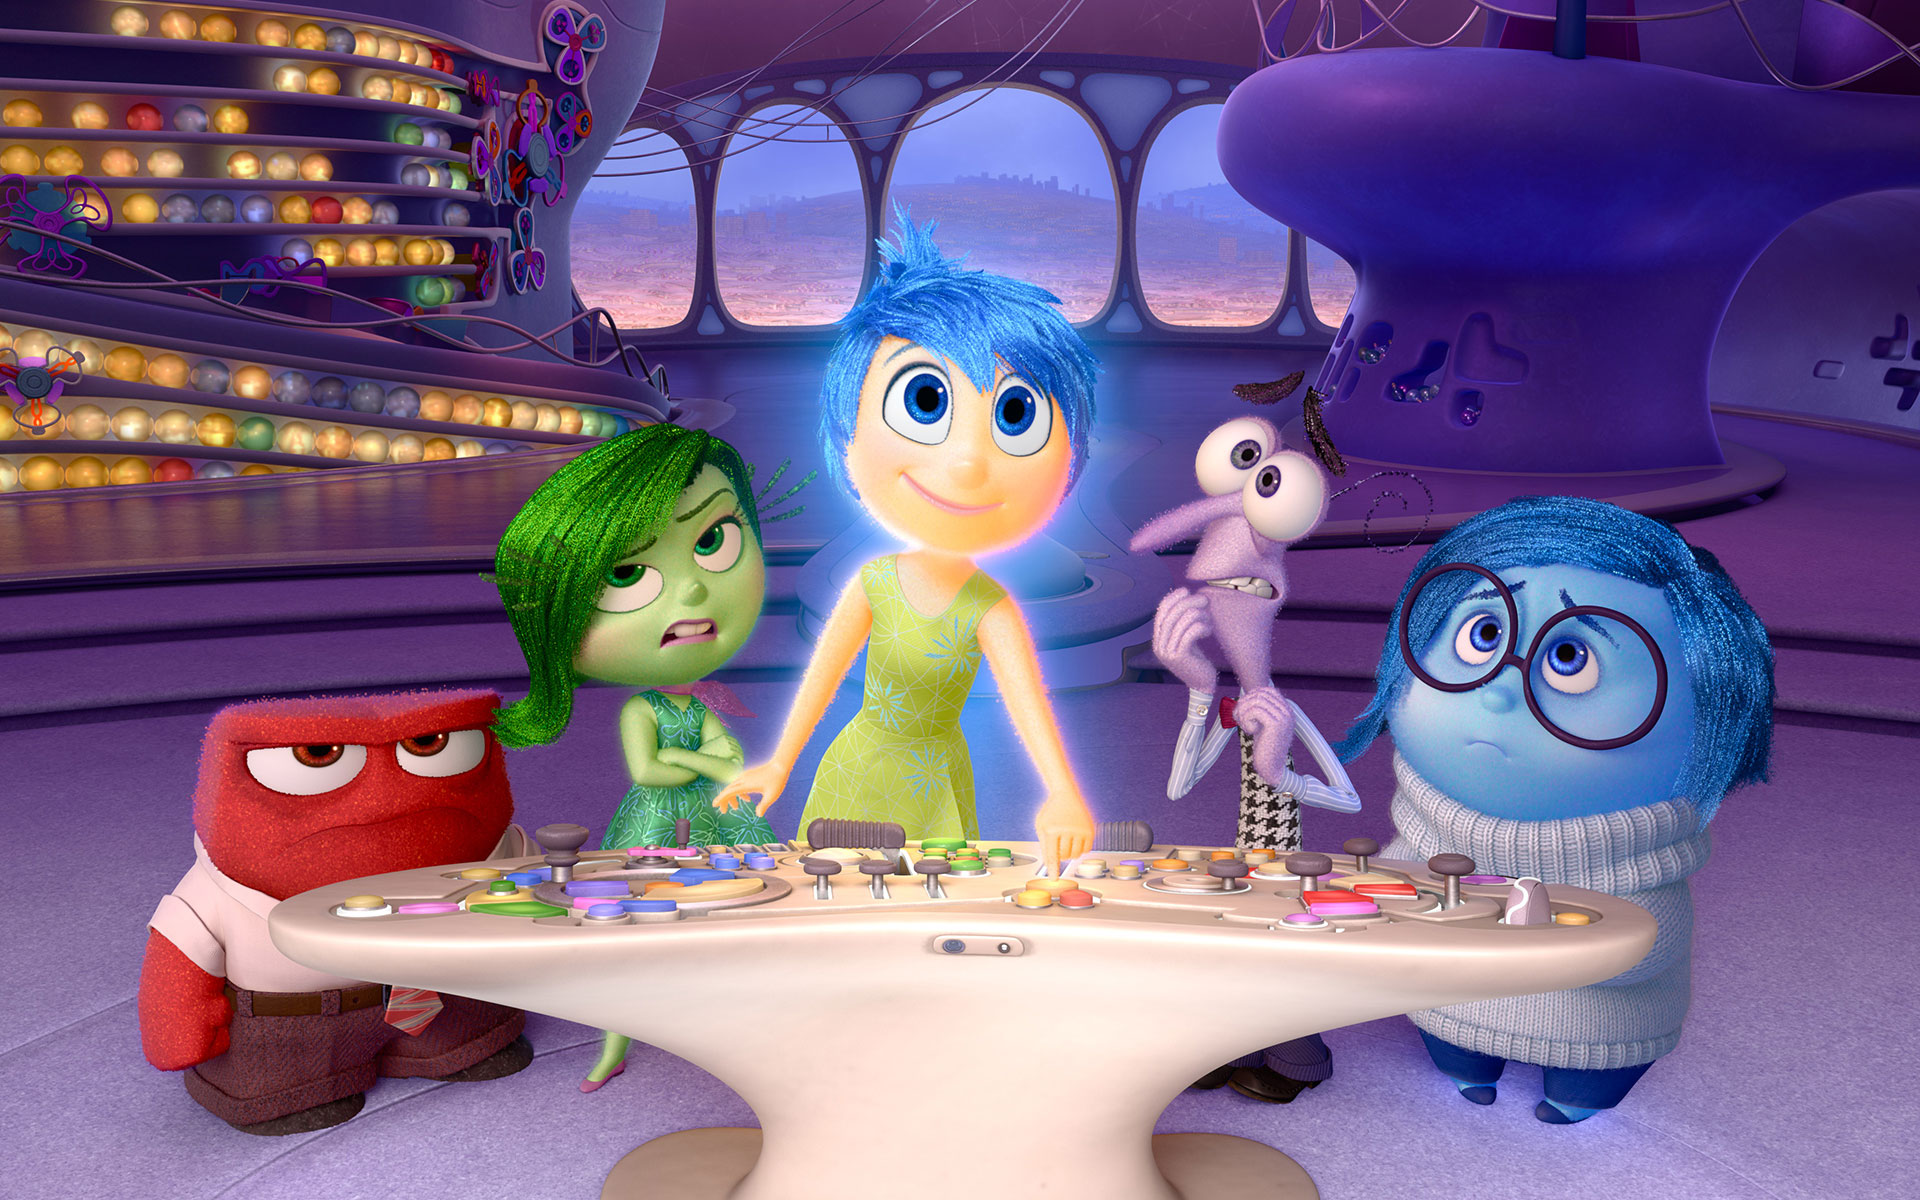 Movie Inside Out 2015 Desktop Backgrounds iPhone 6 Wallpapers HD 1920x1200